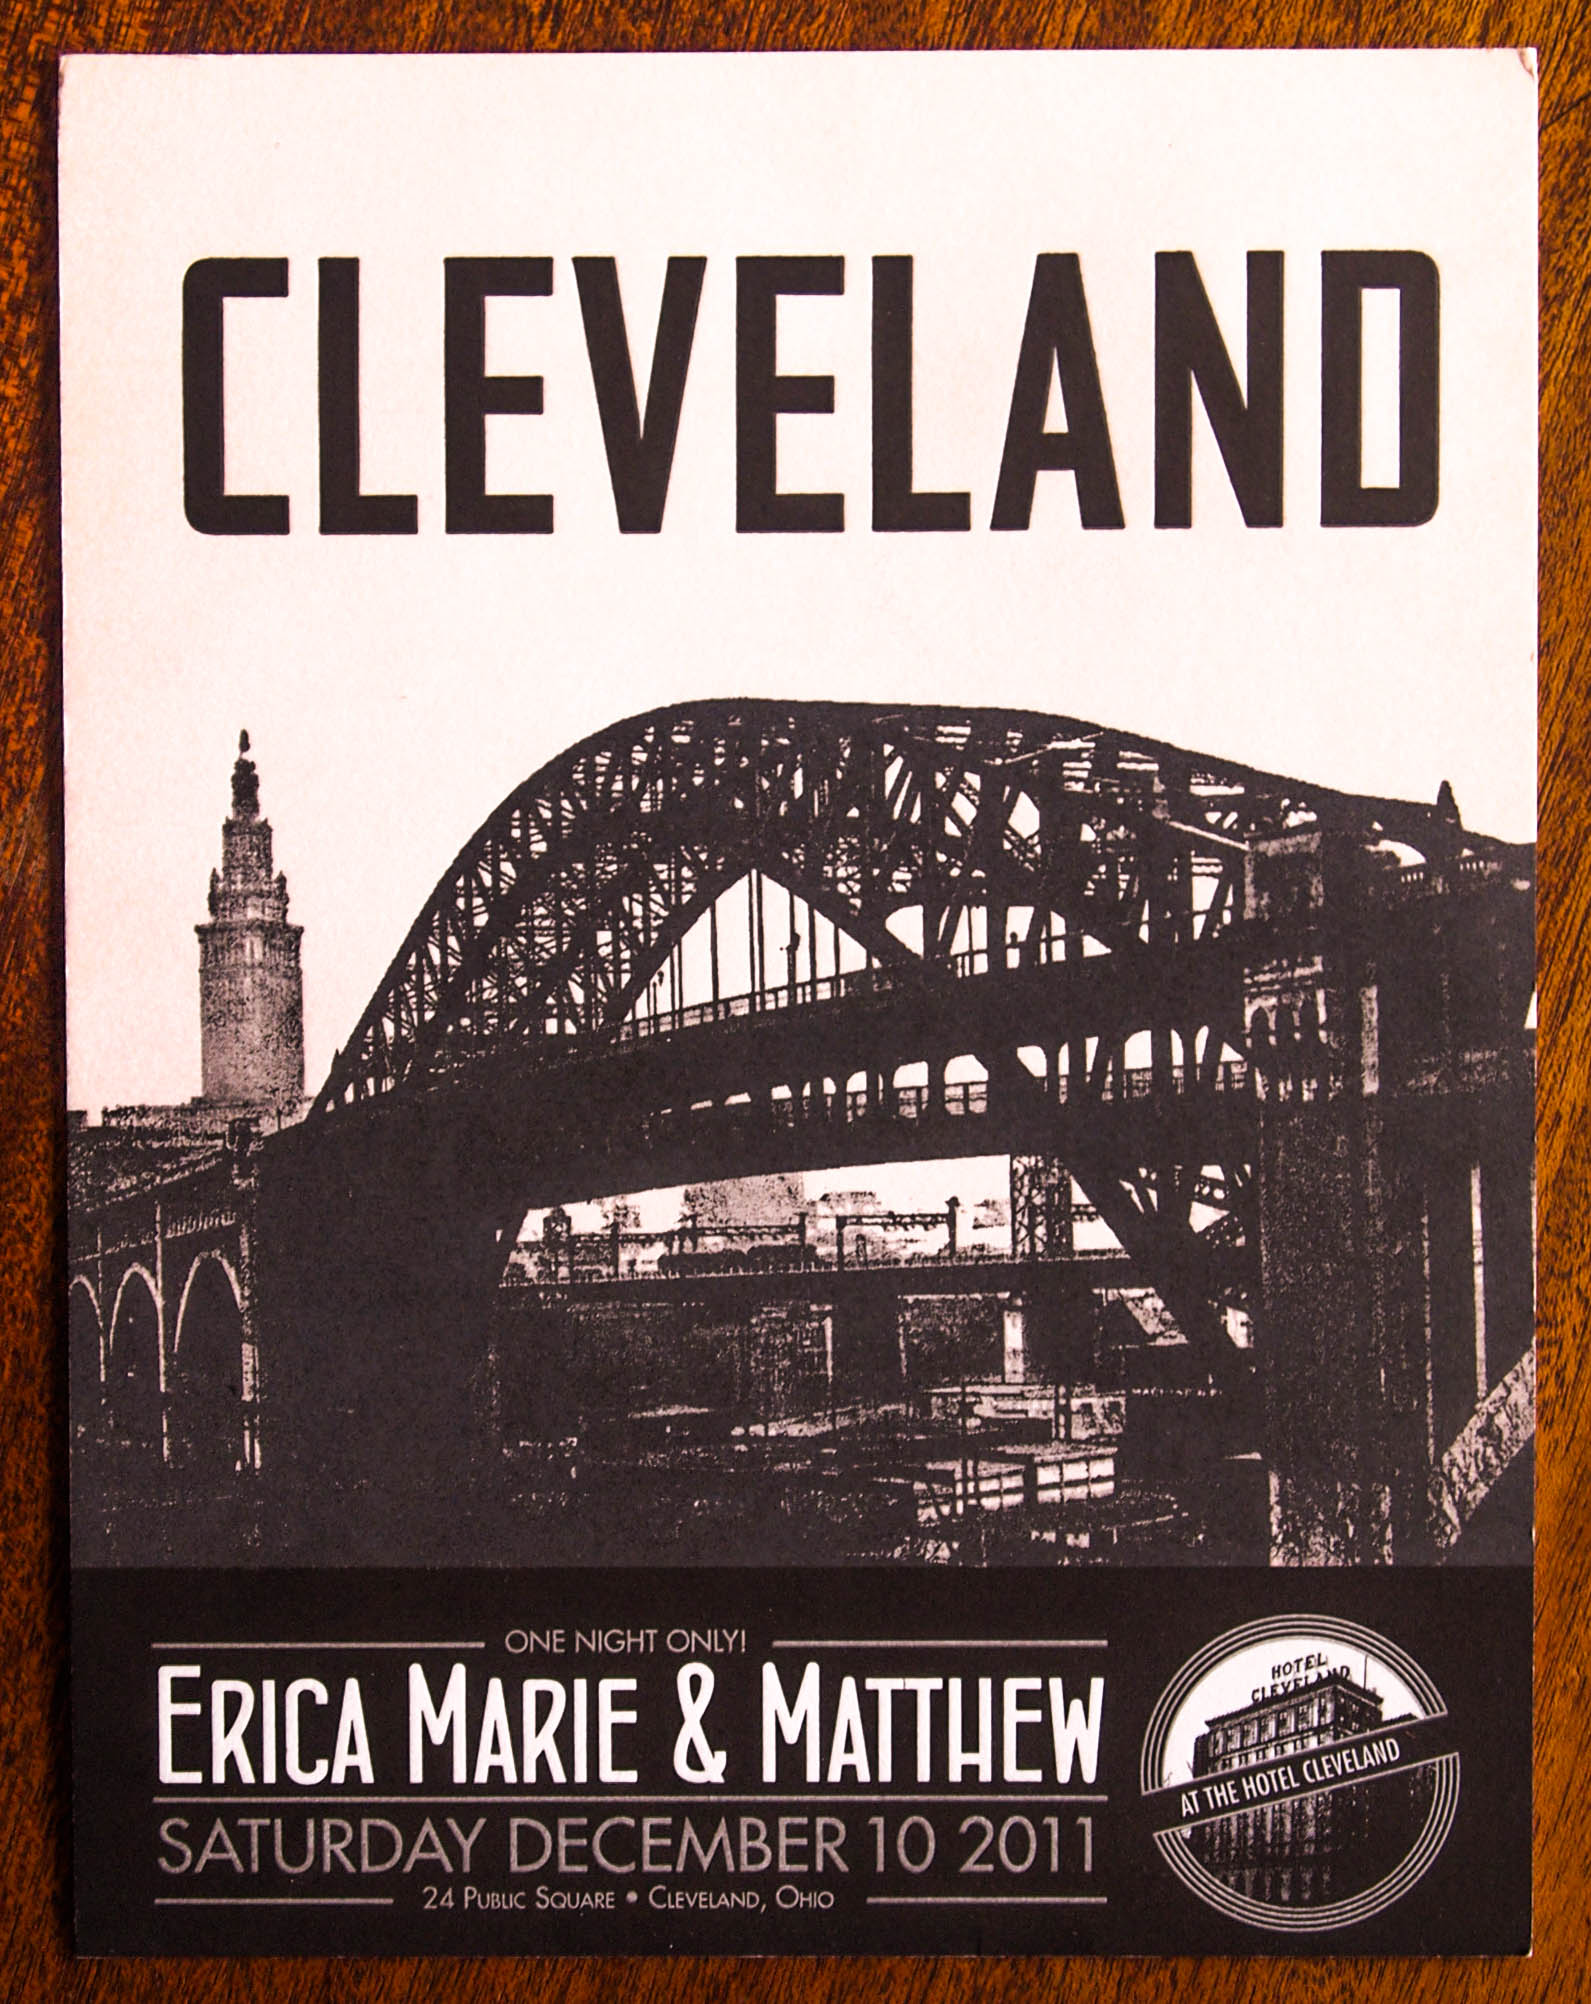 Vintage Cleveland travel poster themedsave the date designed and printed by Giant Squid Press